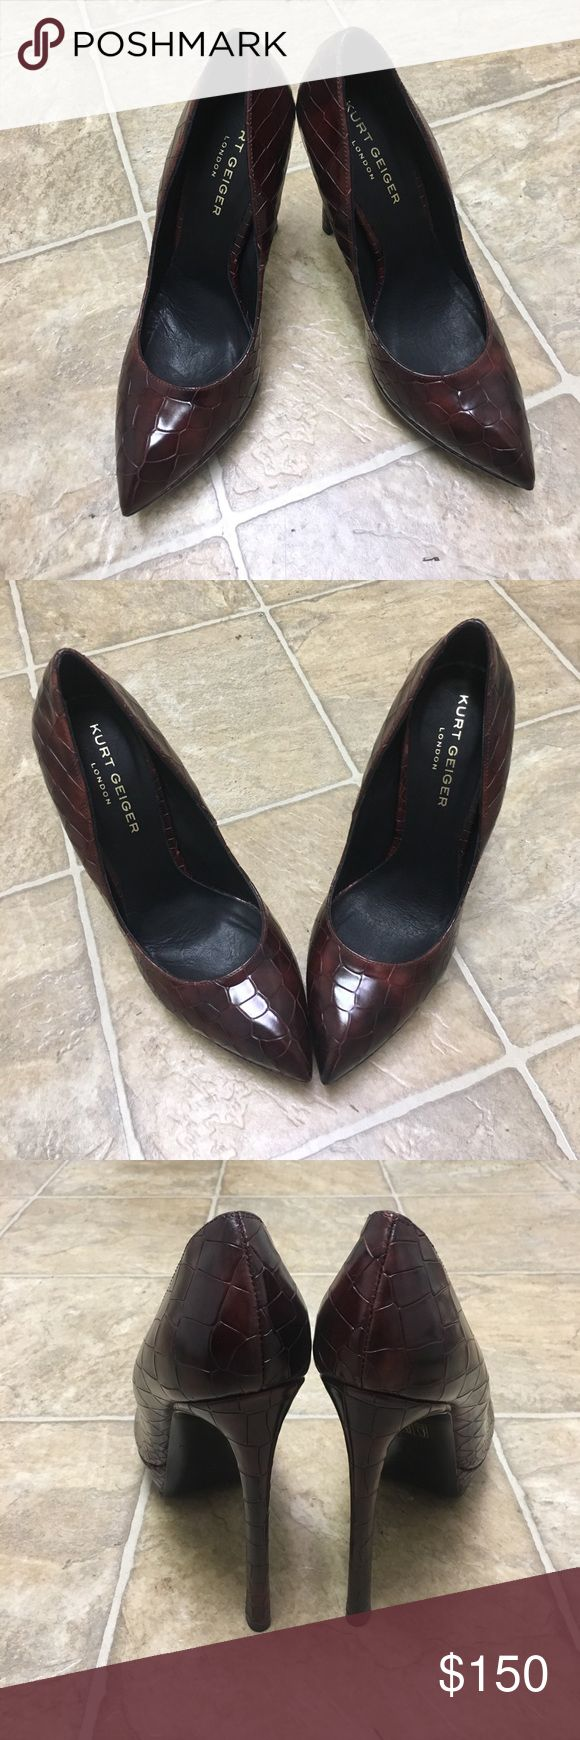 """6"""" Kurt Geiger Leather/Croc Print Courts Brand new, never worn, with box. Purchased from Selfridges in London, England. EUR 40.5 (runs small. fits 40) Kurt Geiger Shoes Heels"""